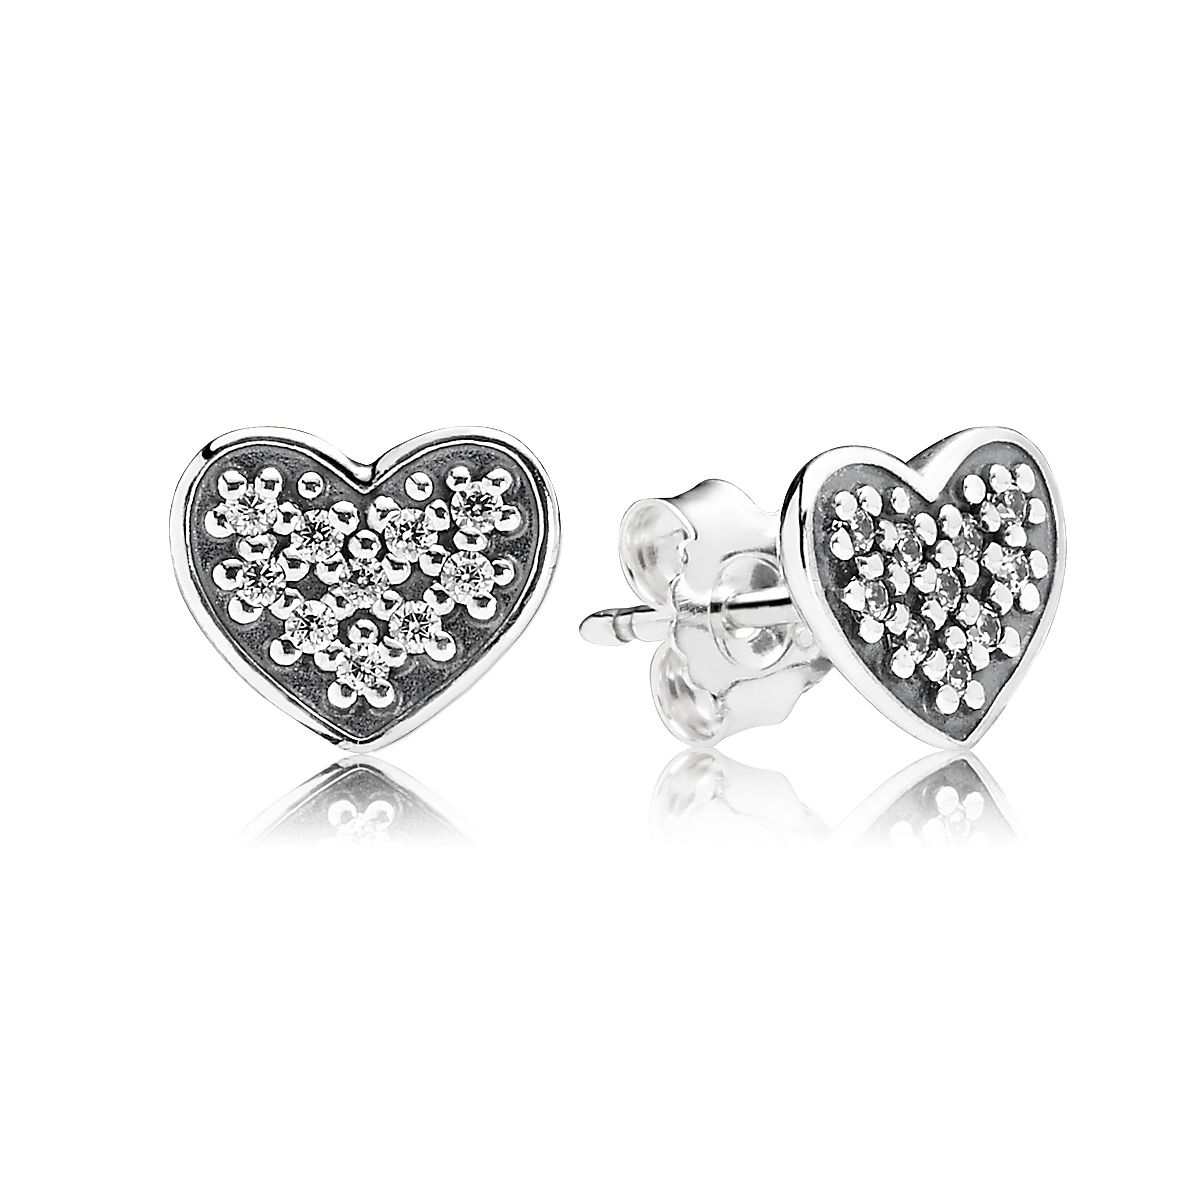 Heart silver stud earring with pave set CZ